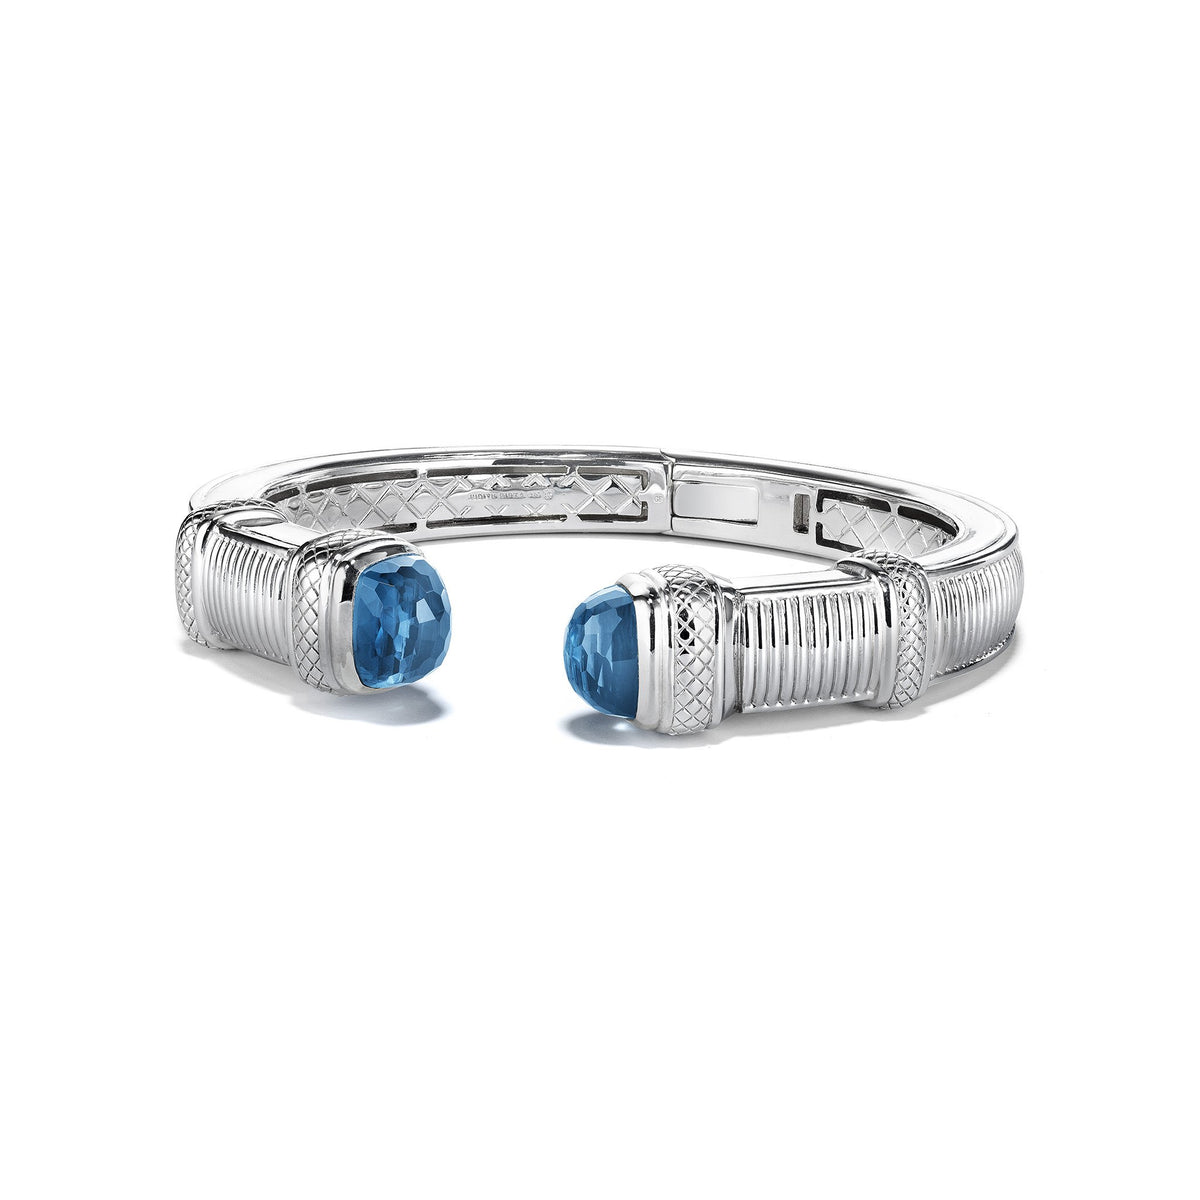 Cassandre Large Bracelet with London Blue Topaz